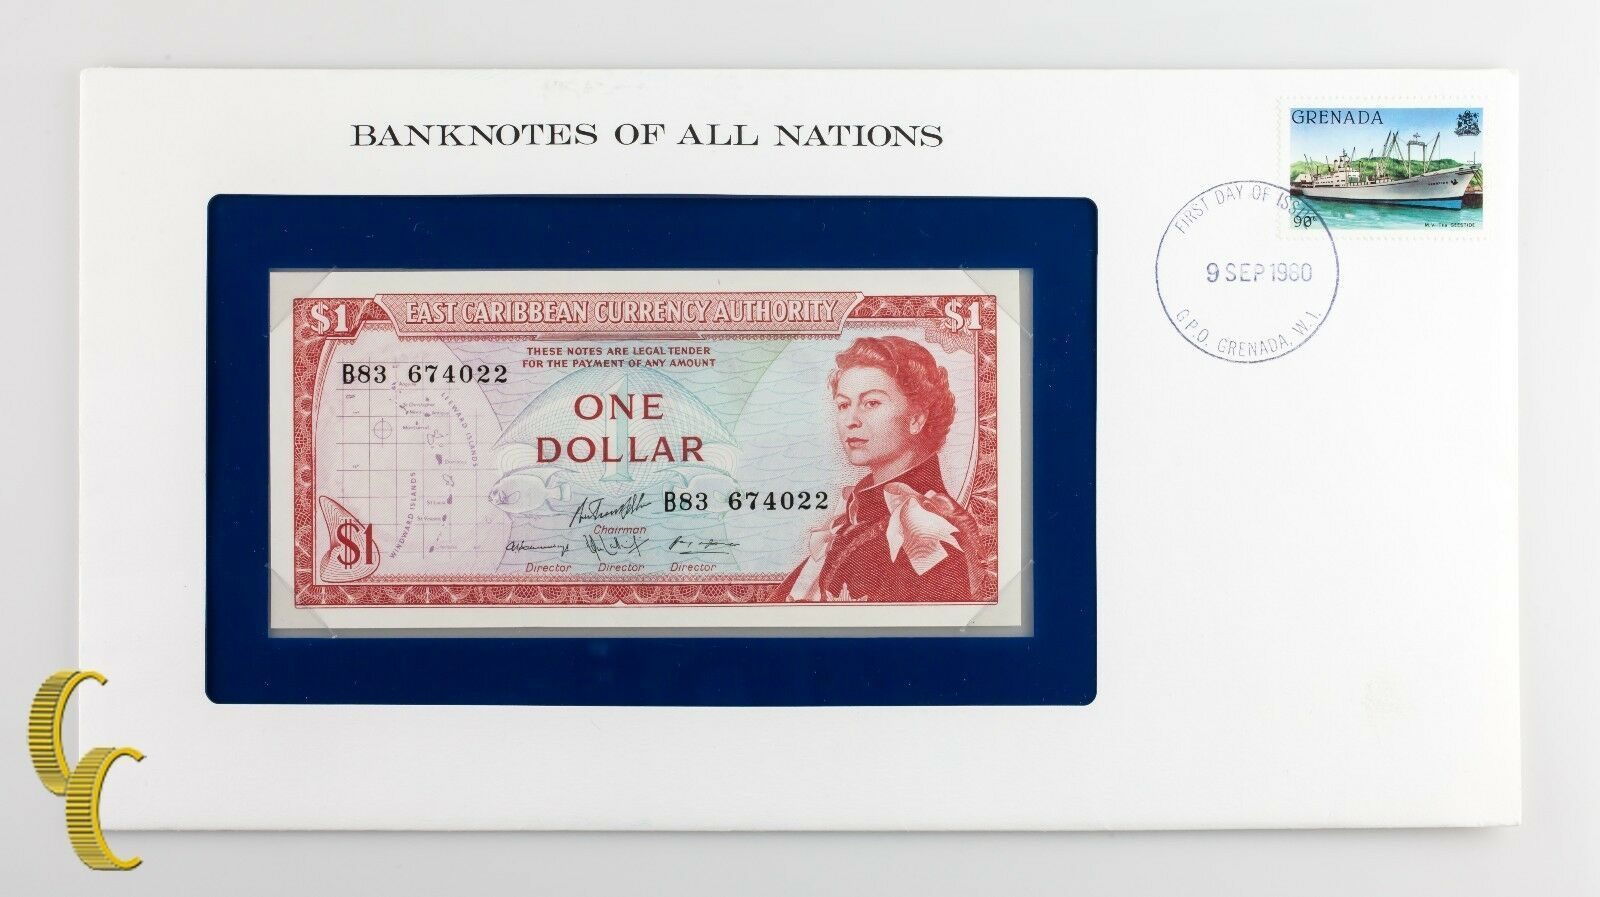 1980 East Caribe una Dollar en Billetes Of All Nations Estampado Sobres